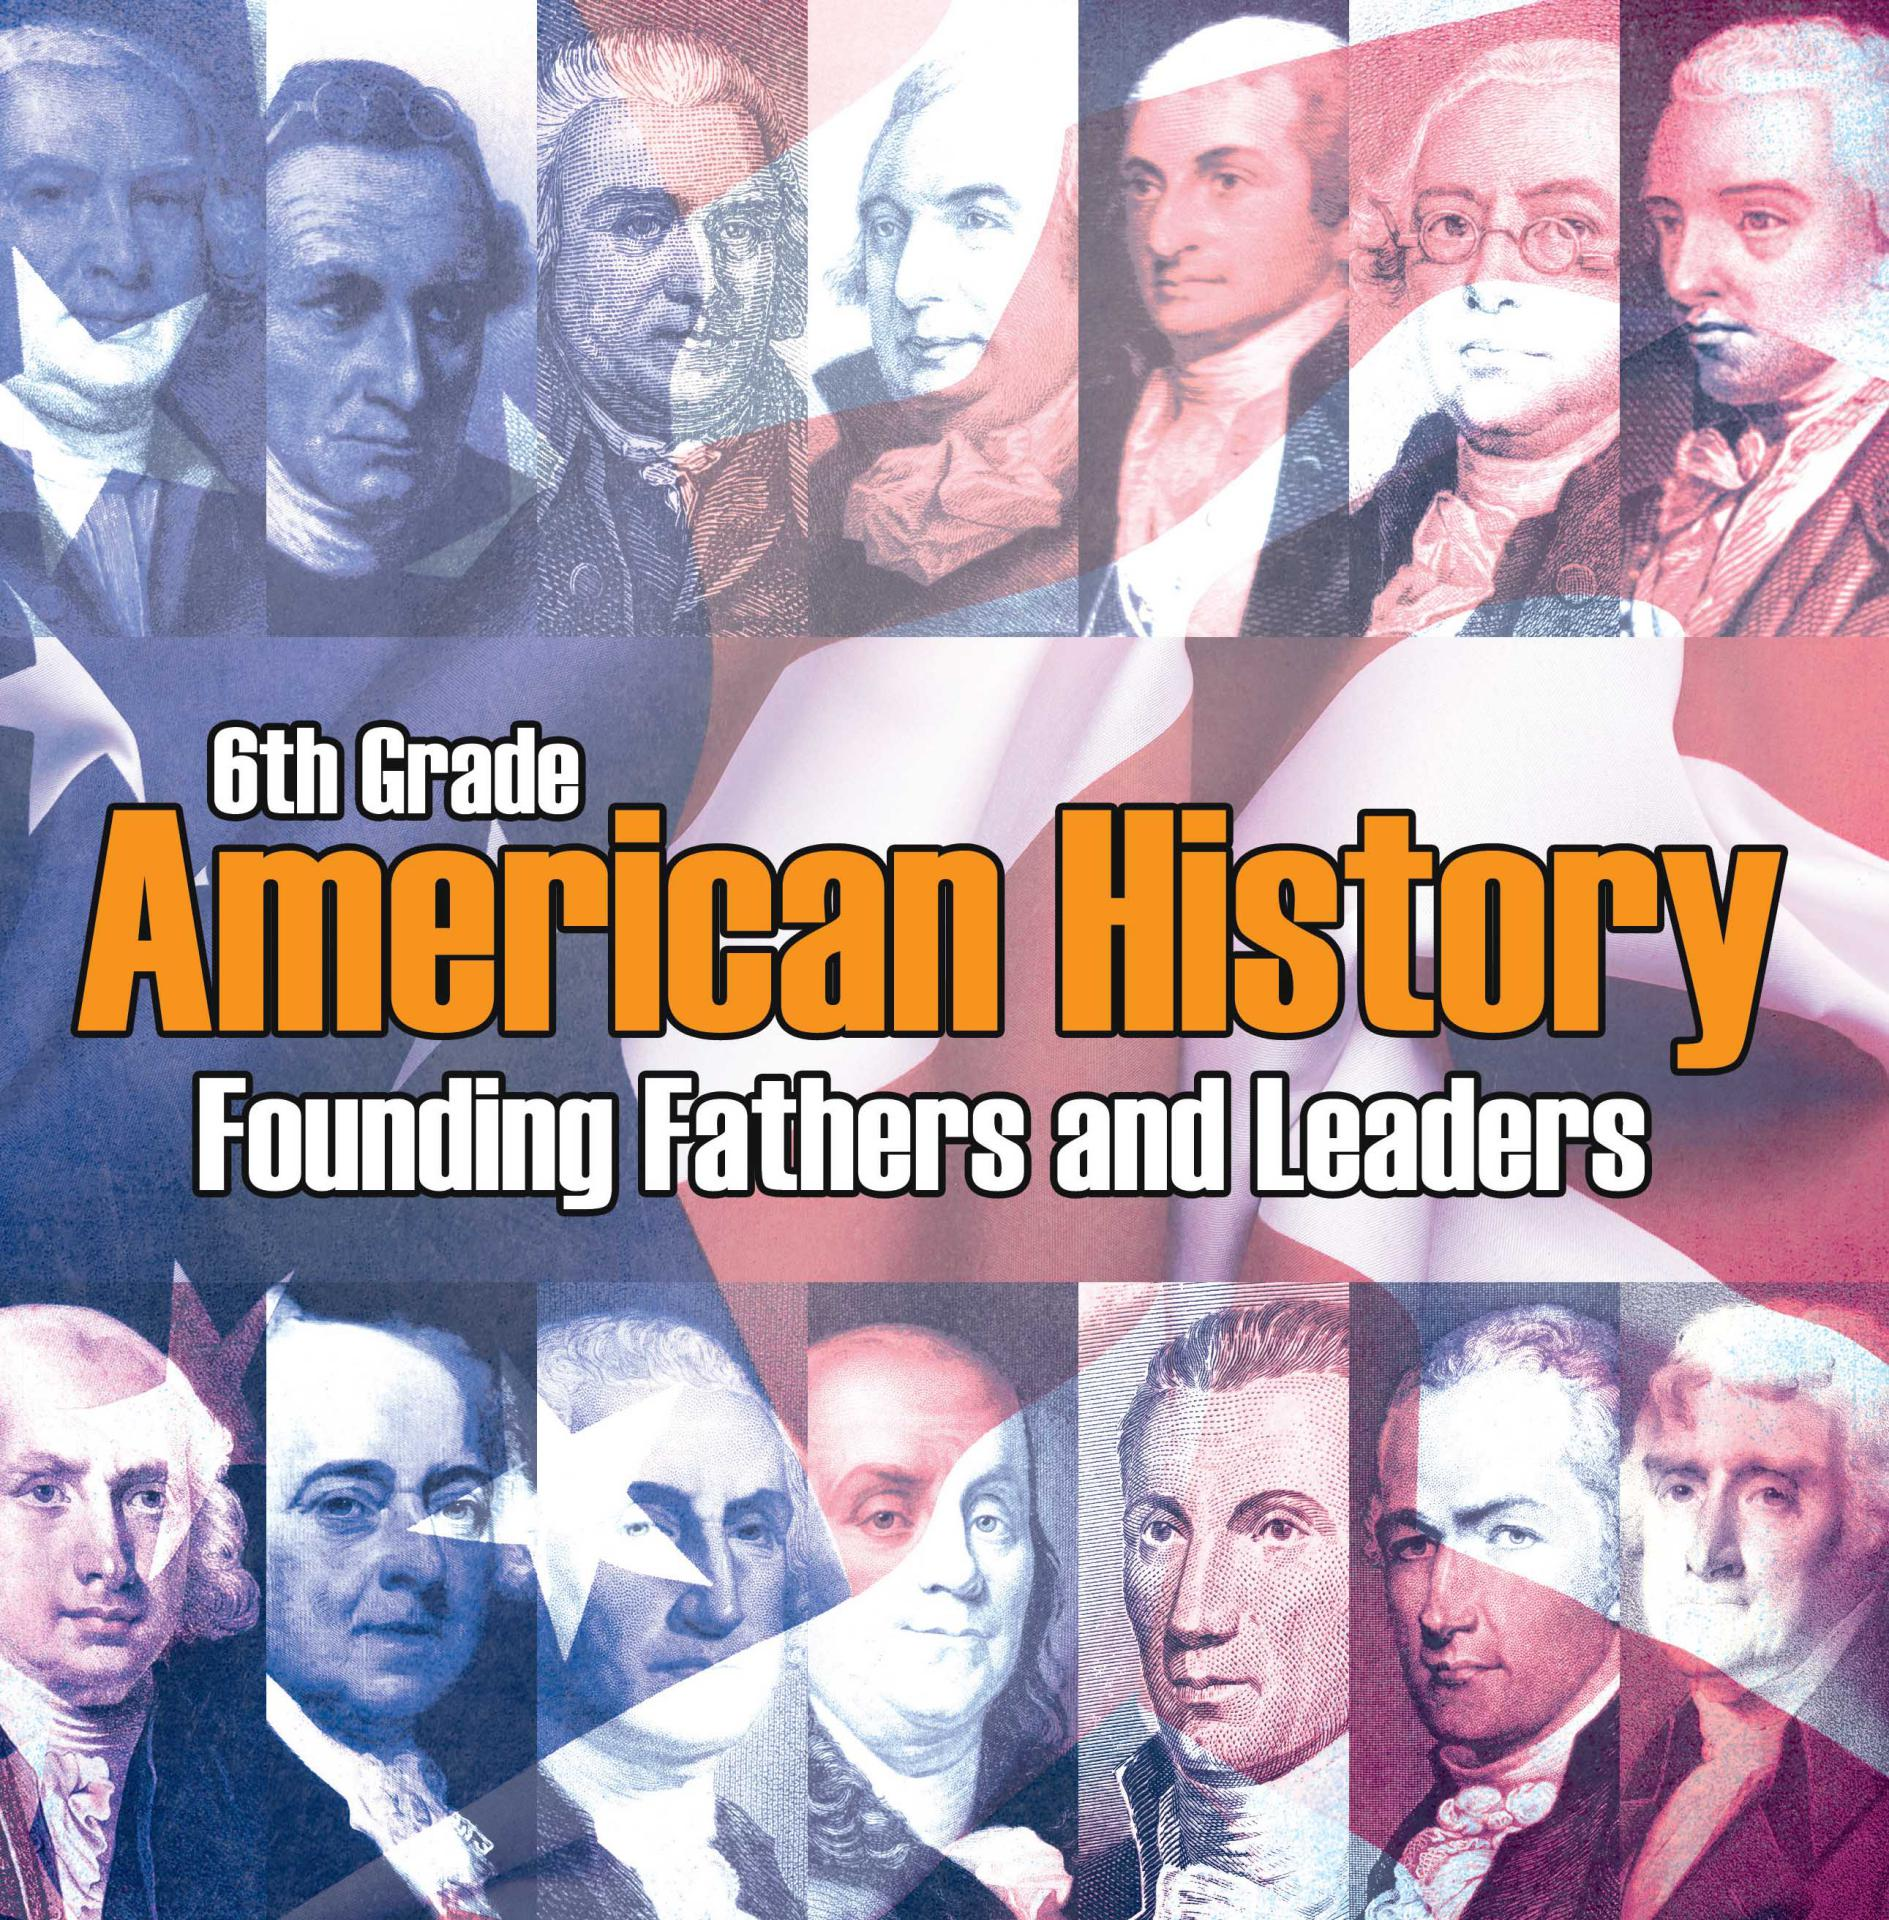 6th Grade American History: Founding Fathers and Leaders American Revolution Kids Sixth Grade Books